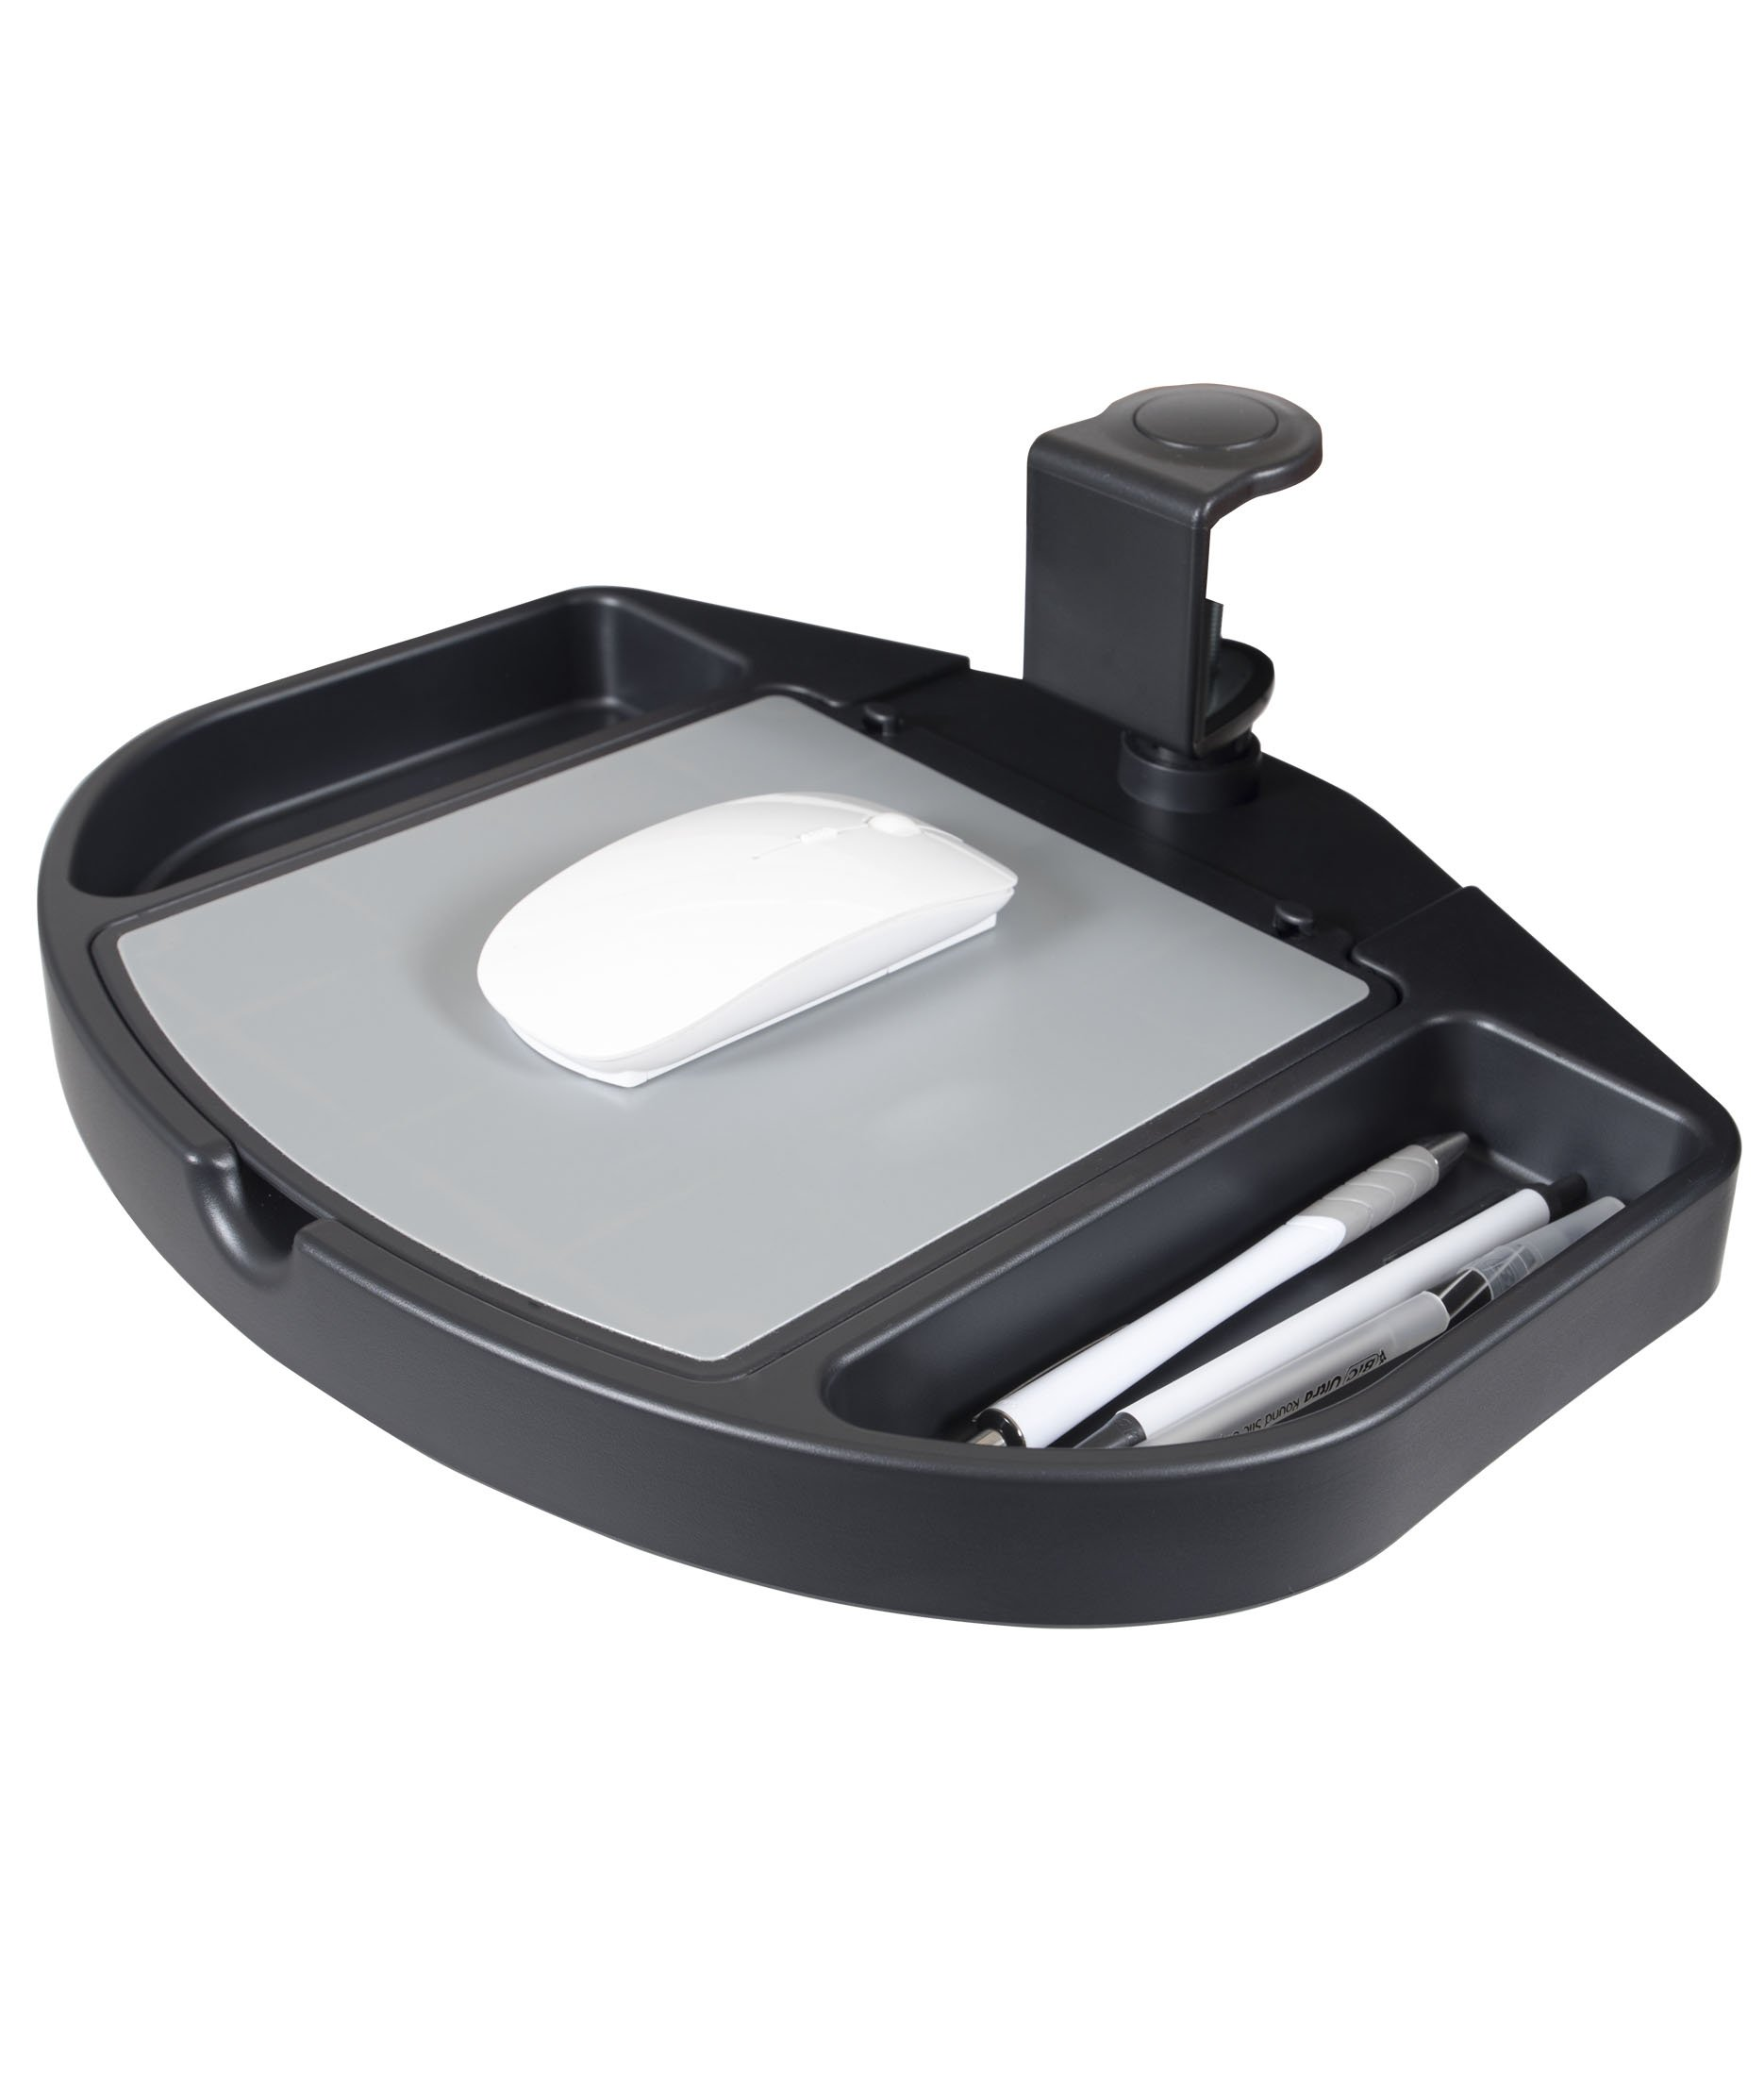 Clamp On 360 Degrees Swivel Out Mouse Tray with Storage